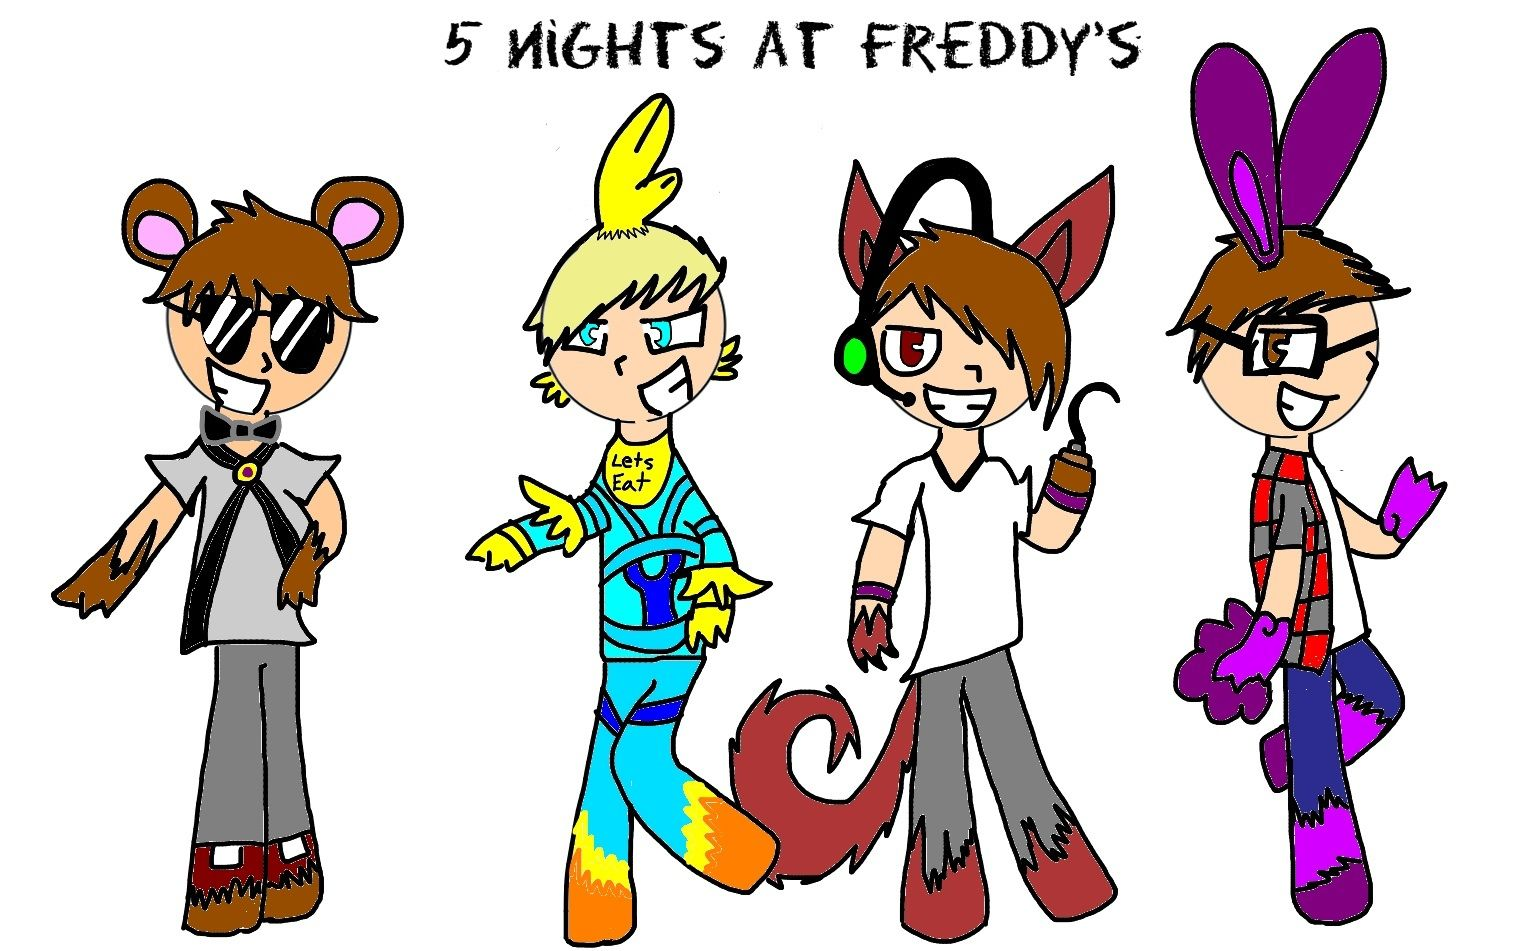 freddy fazzbear skydoesminecraft chica the chicken